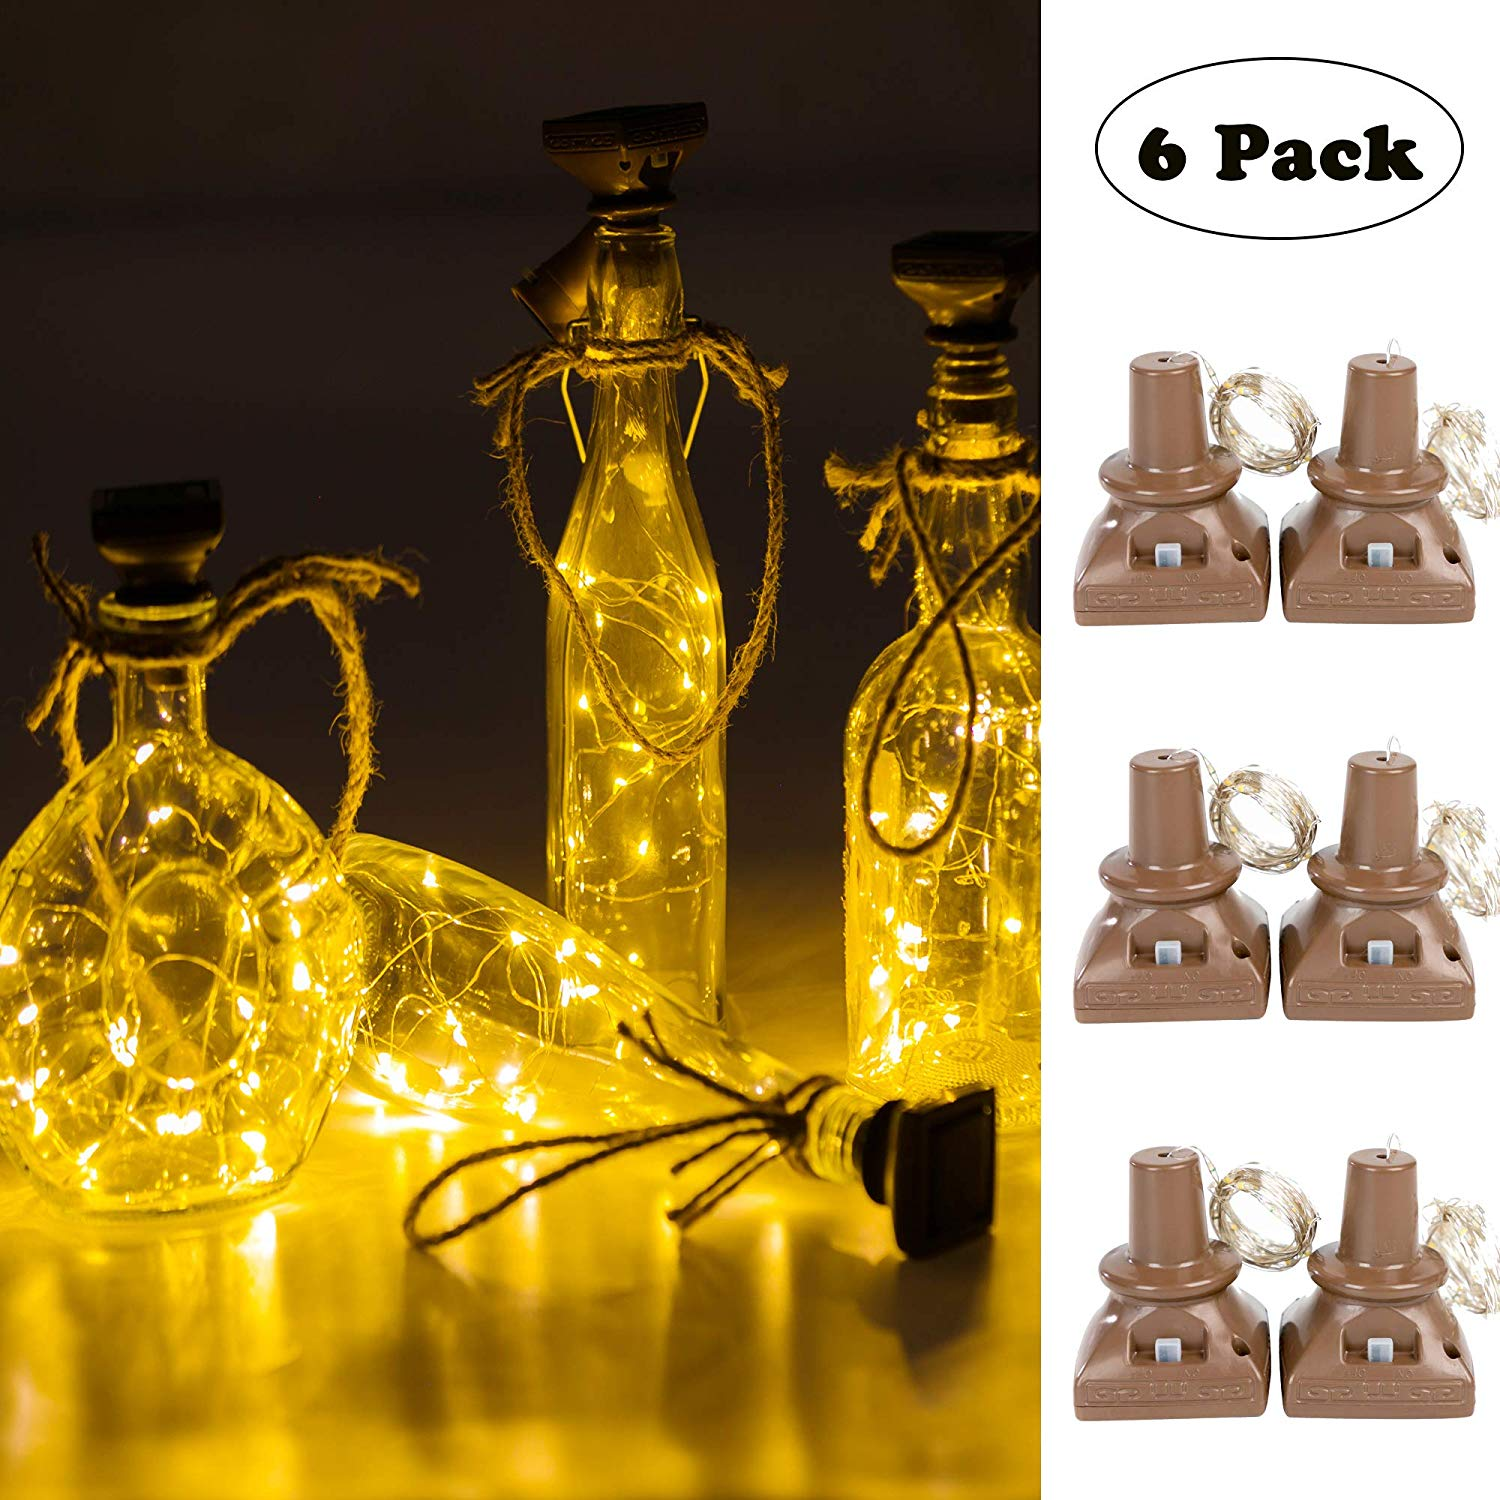 6pcs 20leds Solar Powered Wine Bottle Lights Waterproof Copper Cork Shaped Lights For Wedding Christmas/Outdoor/ Holiday/ Garden